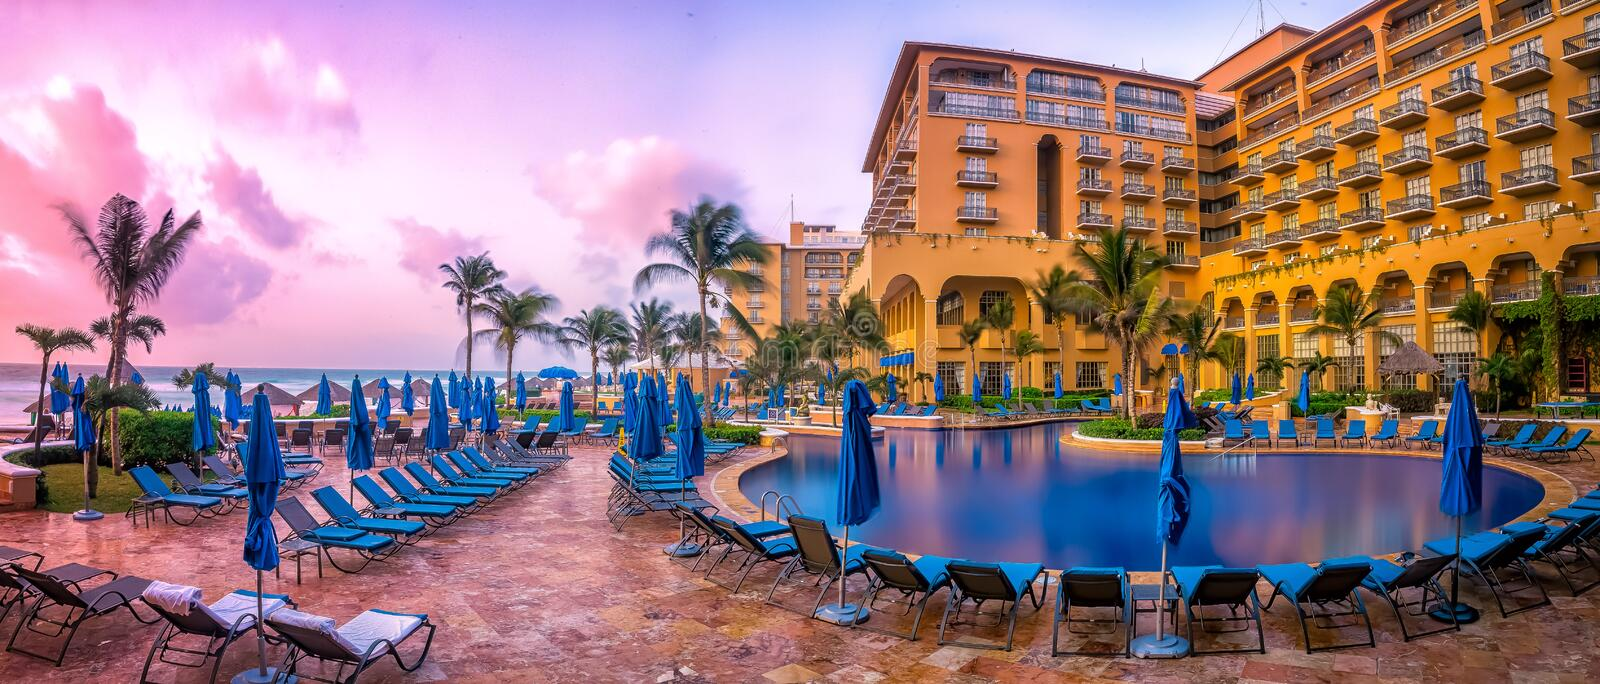 Cancun beach resort with palms. A beach resort in Cancun with ocean and palm trees stock images